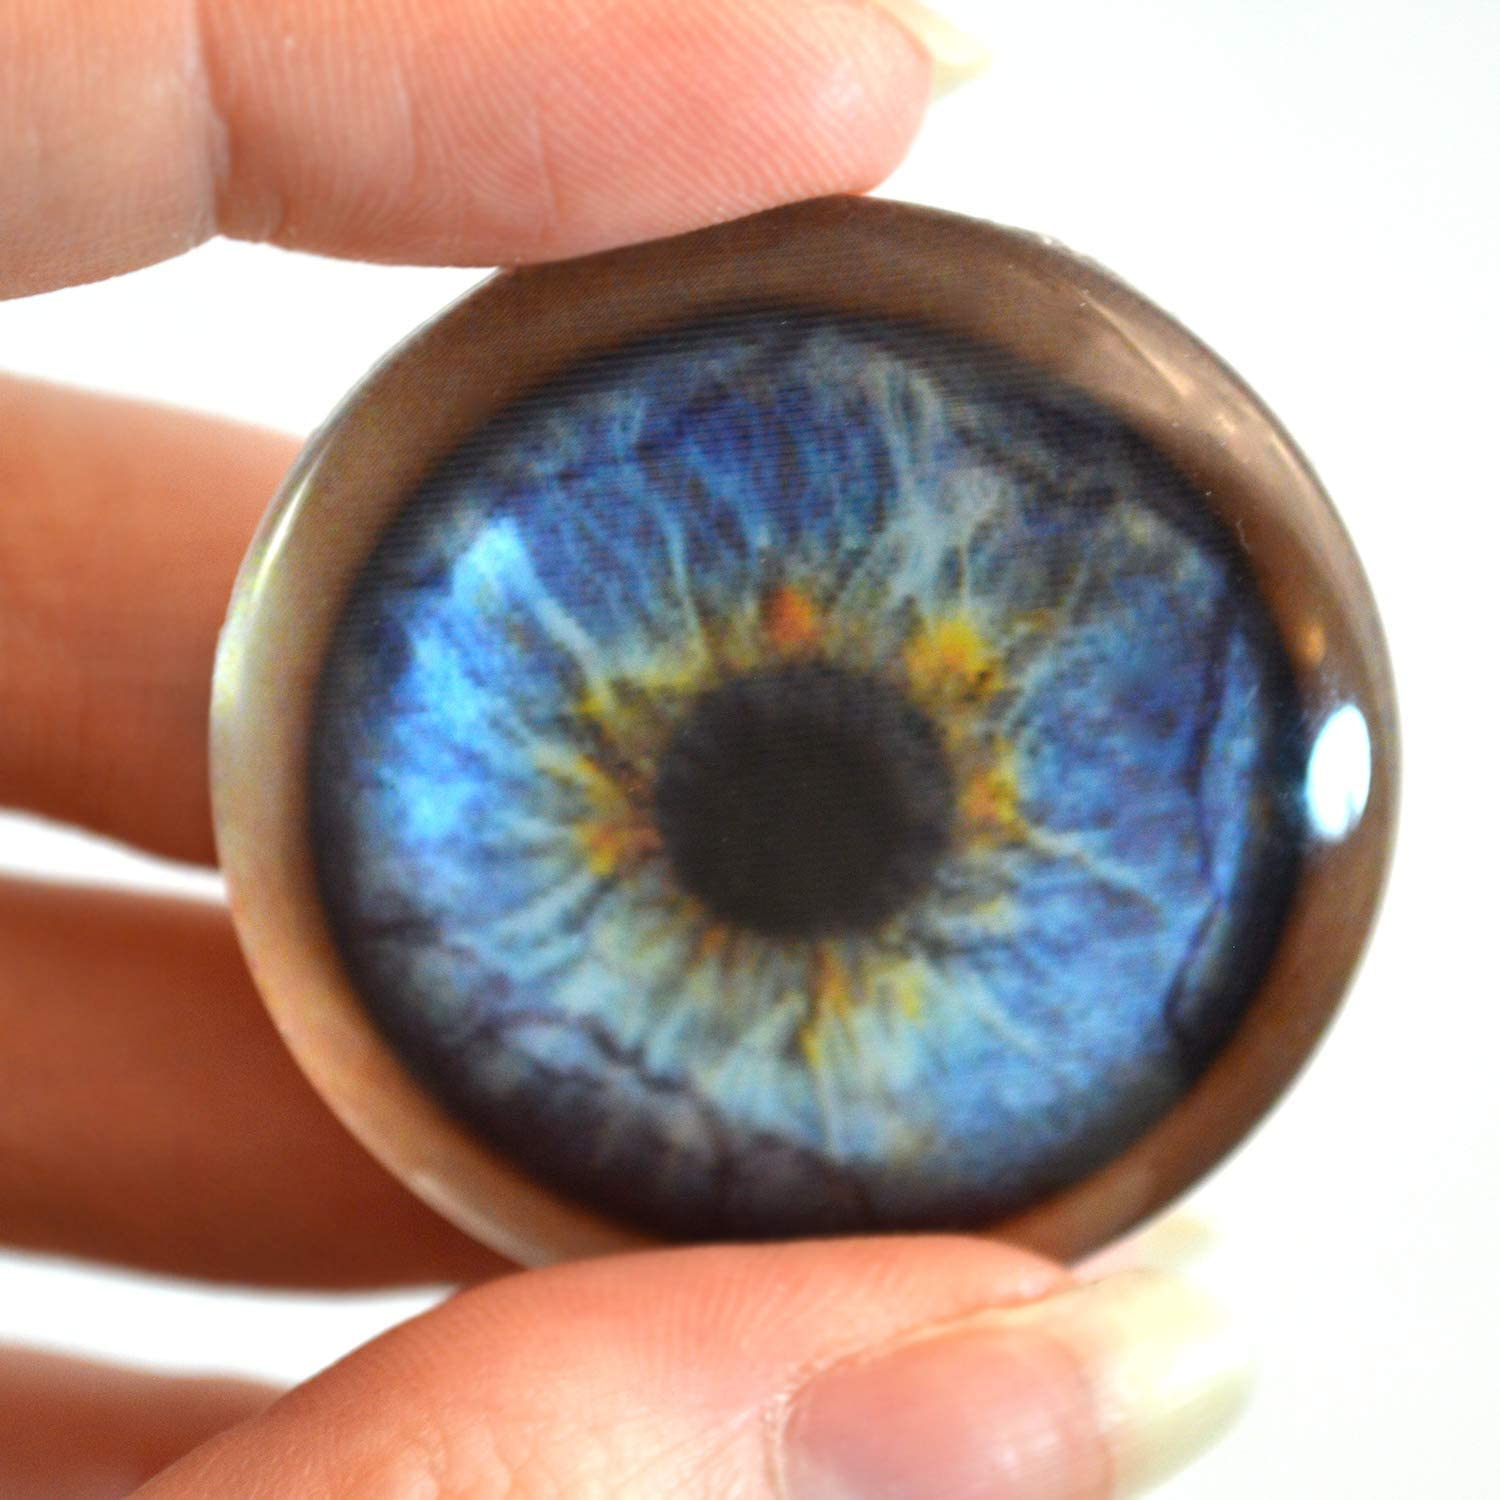 30mm Blue Werewolf Glass Eyes Animated Holographic Cabochons Pair Jewelry Making